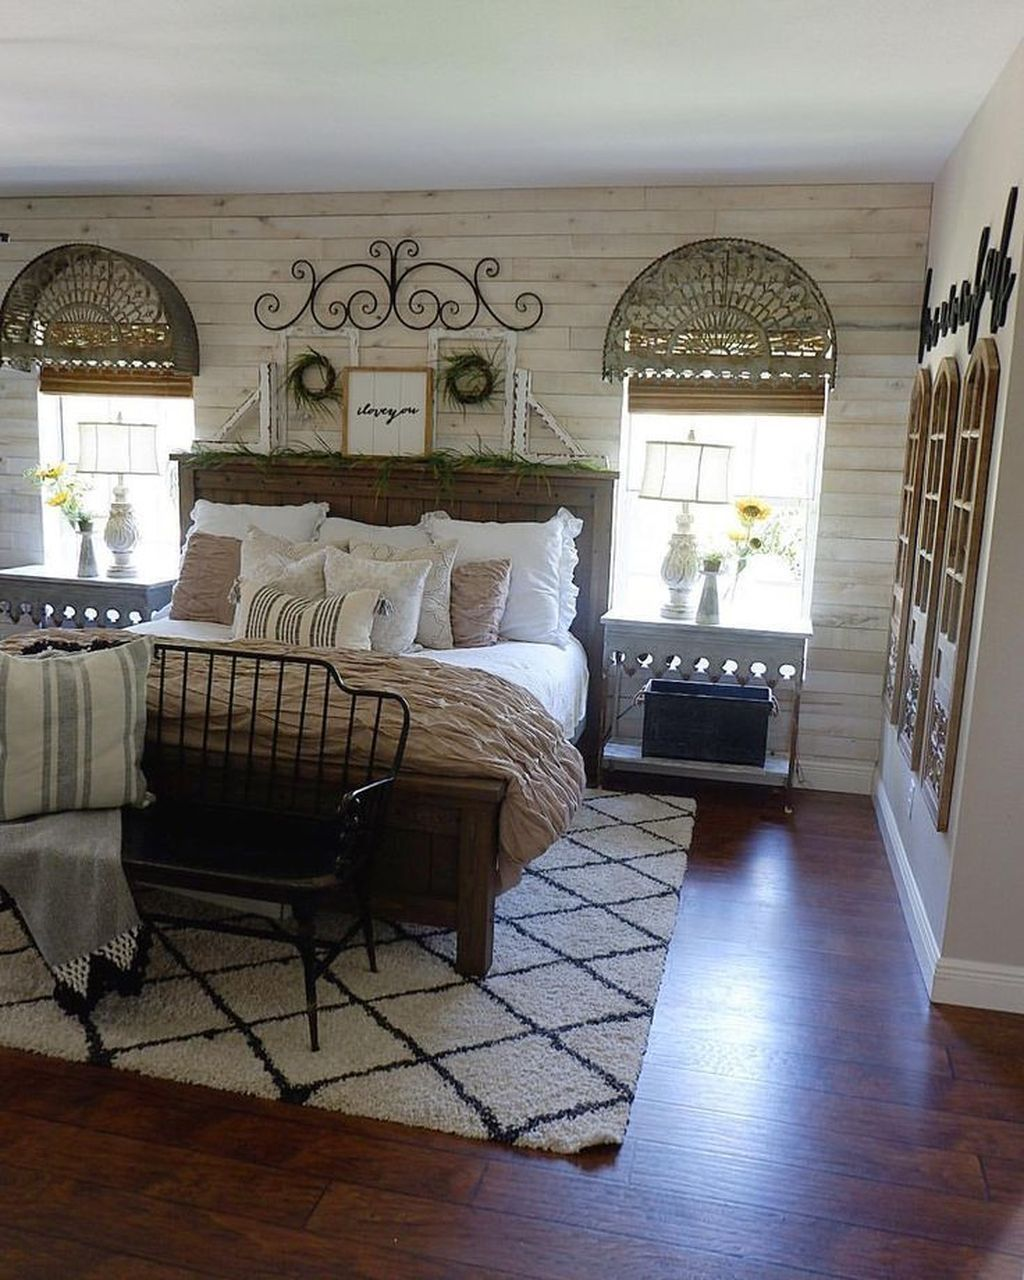 40+ Superb Farmhouse Bedroom Decorating Ideas For Your Apartment